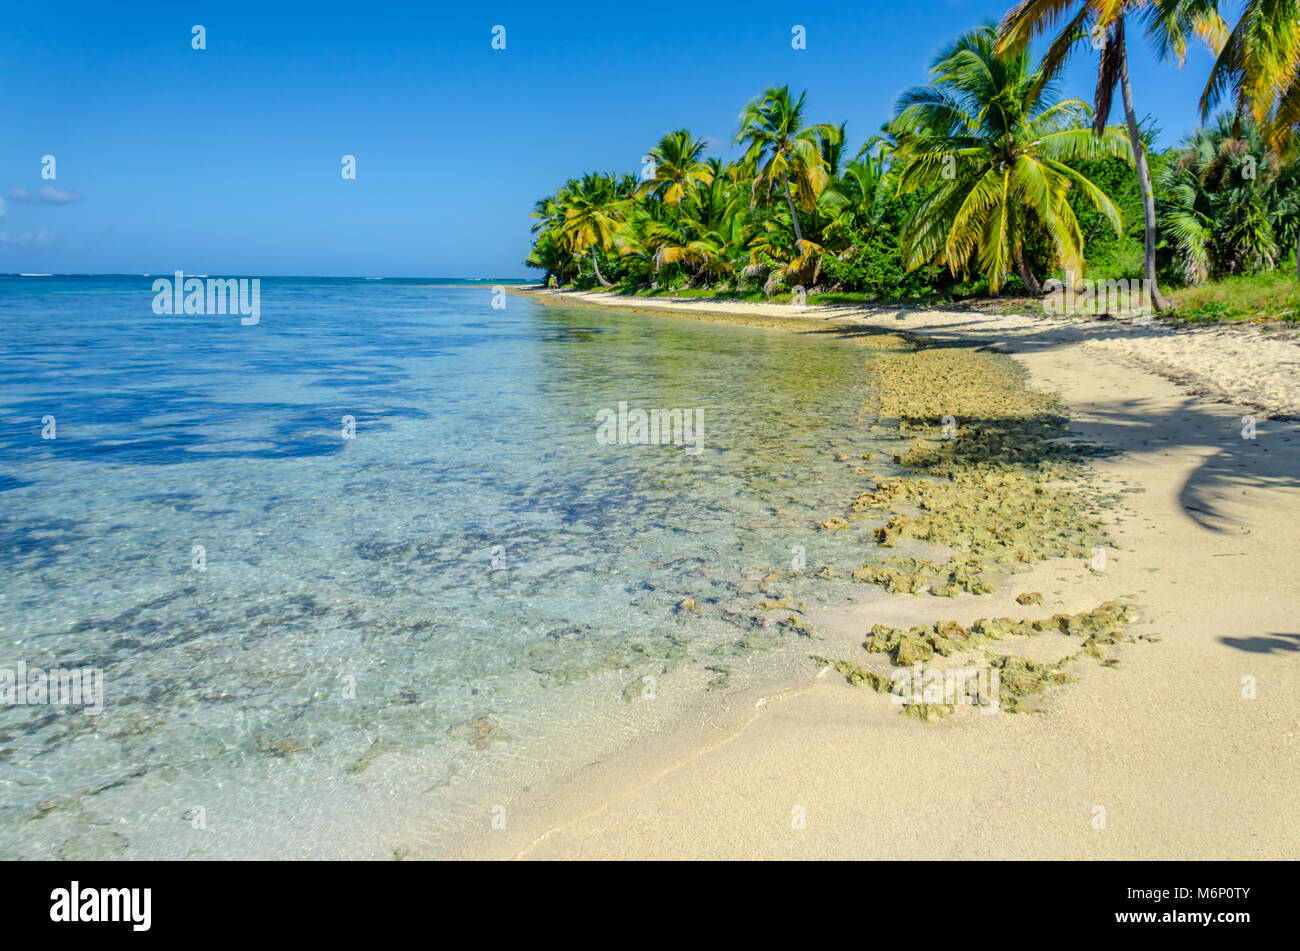 tropical beach with transparent ocean water, palm grove, stones, people walking along the shore and a blue sky with Stock Photo